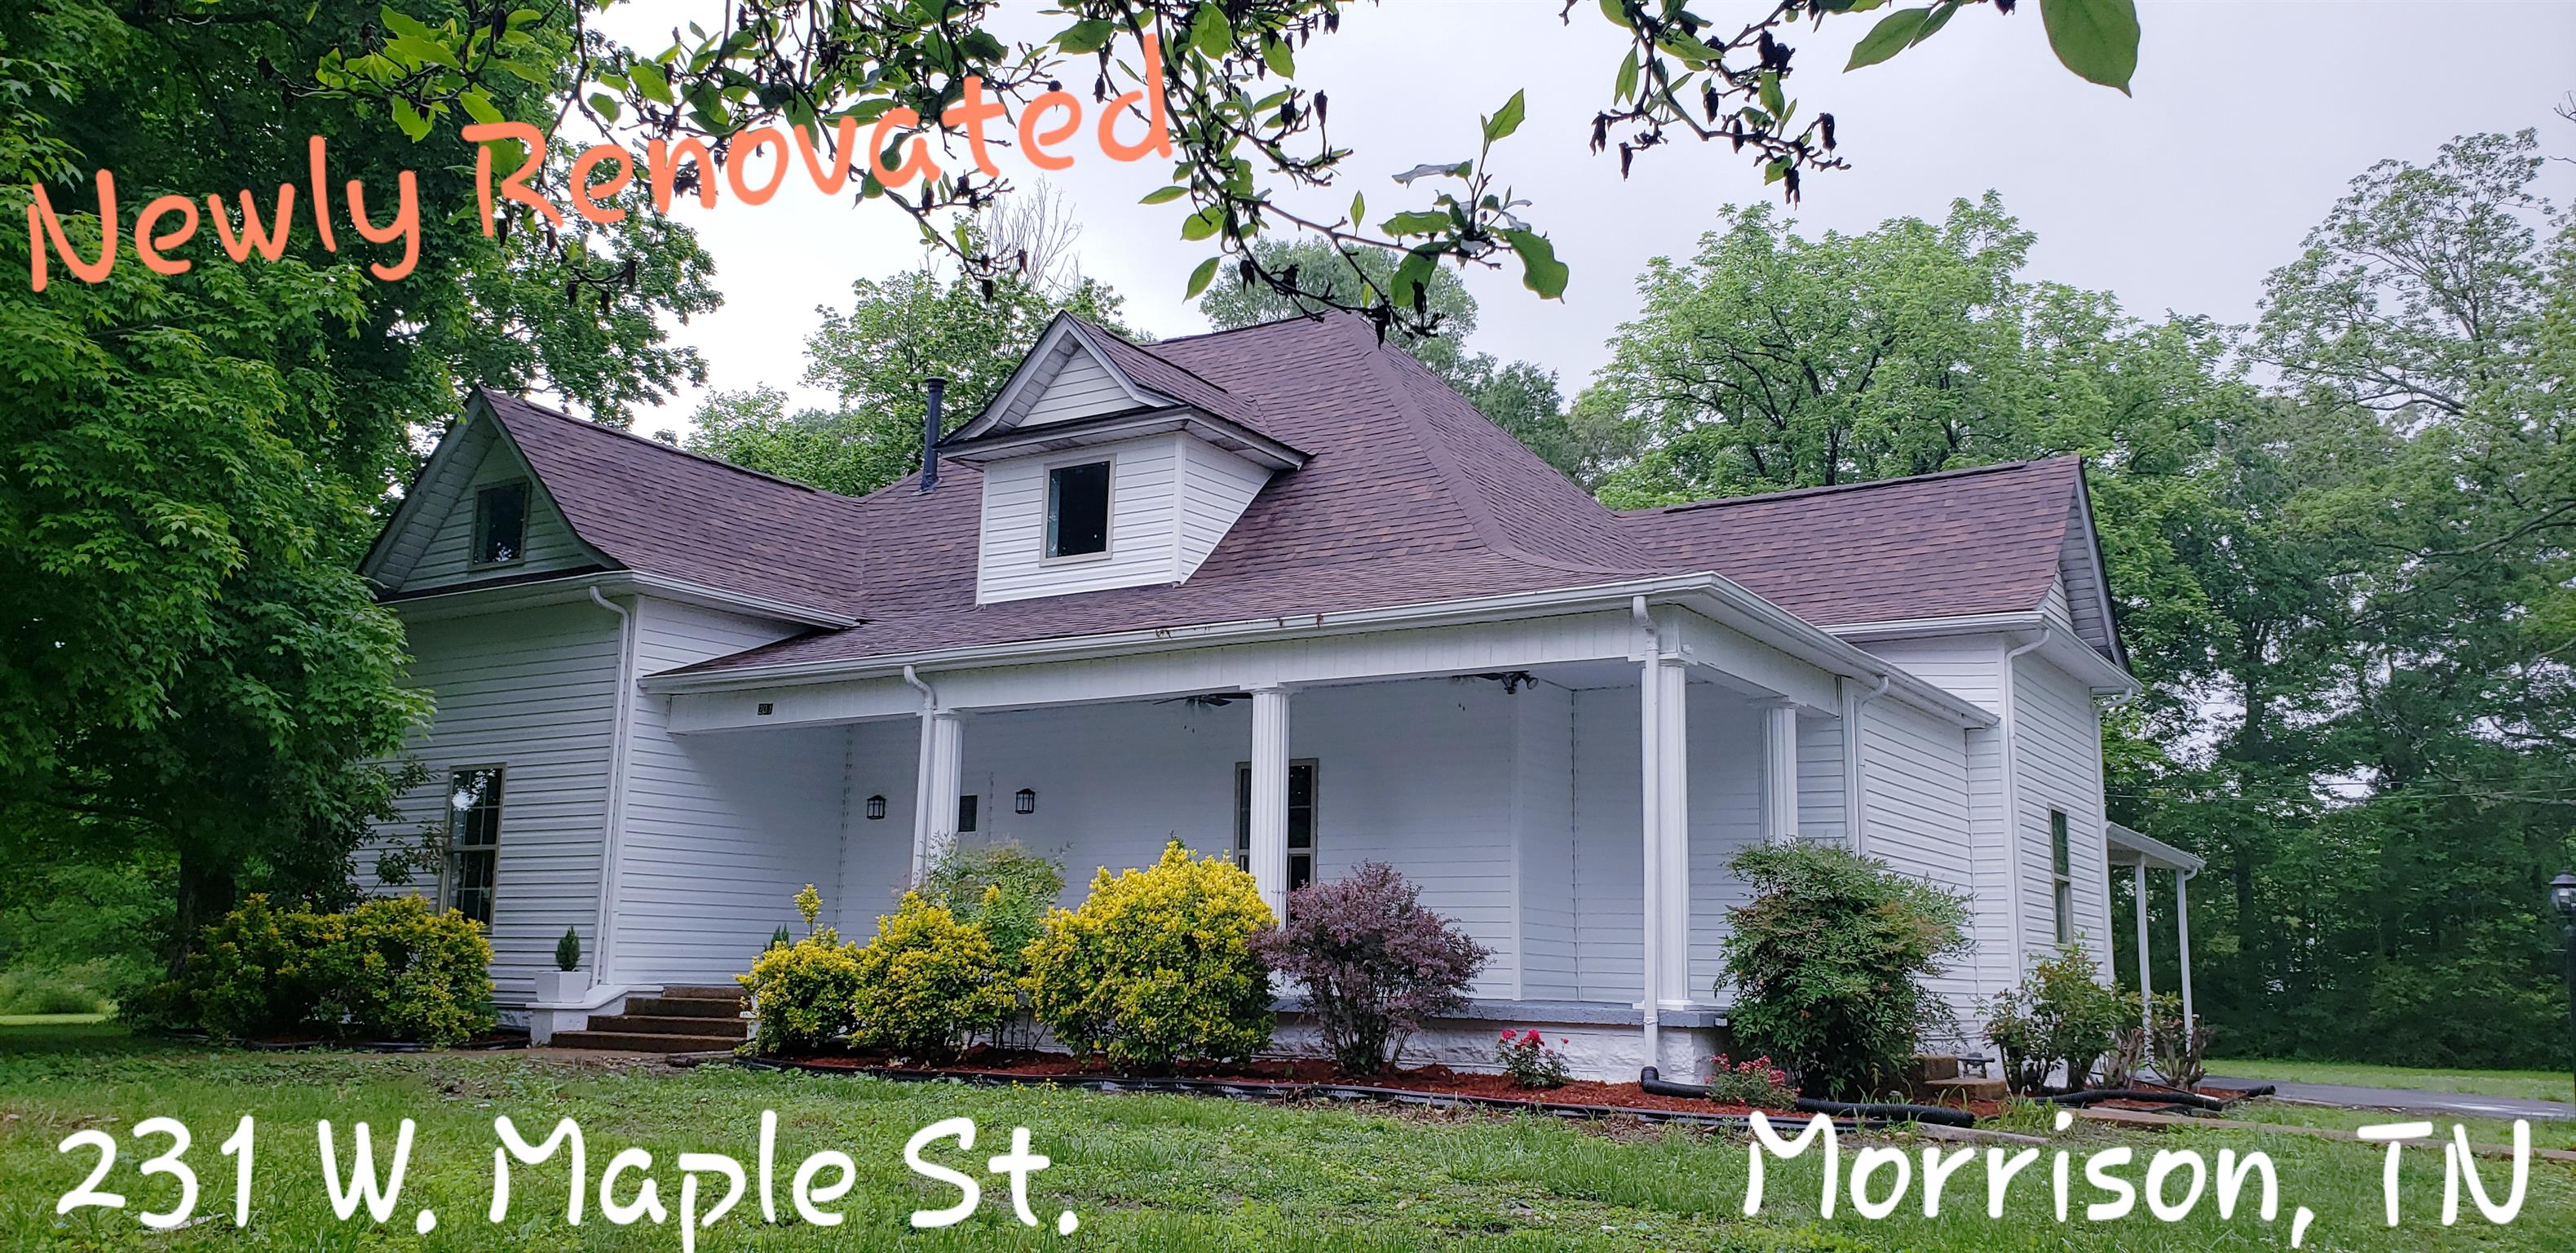 231 W Maple St, Morrison, TN 37357 - Morrison, TN real estate listing